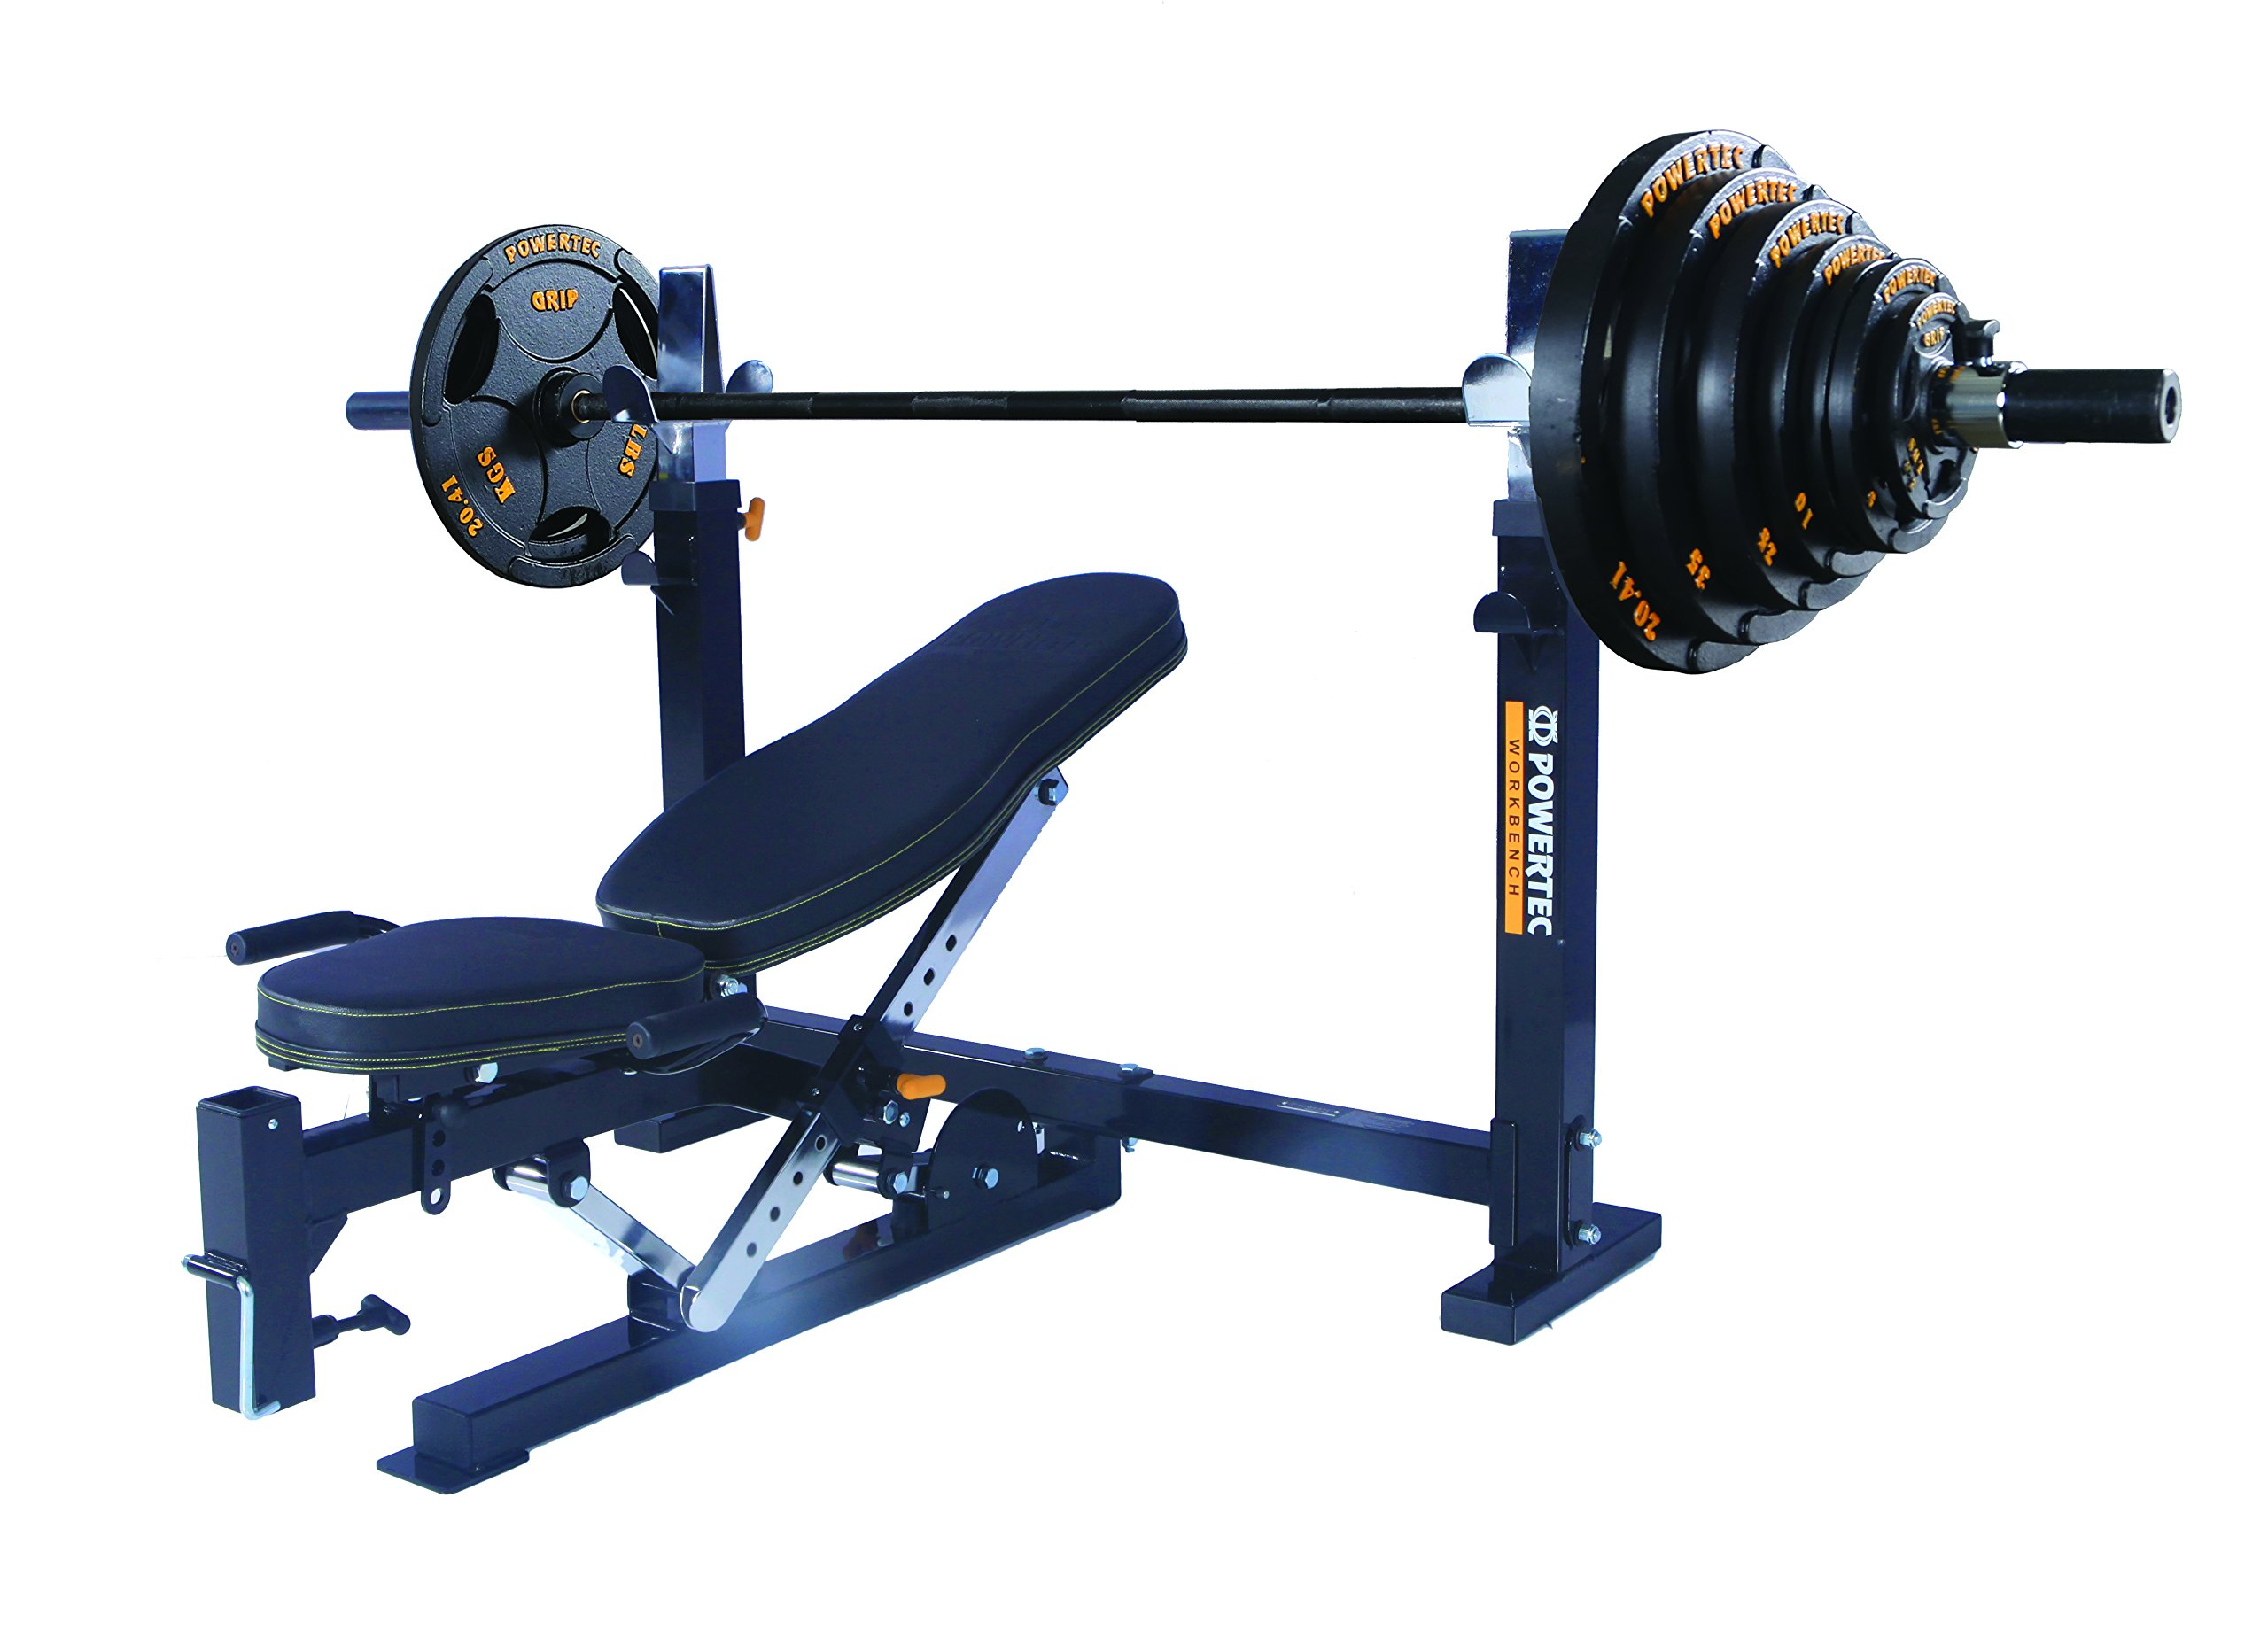 Powertec Workbench Olympic Bench (WB-OB15) + Olympic Bar and Weight Set (OS-300-B) by Powertec Fitness